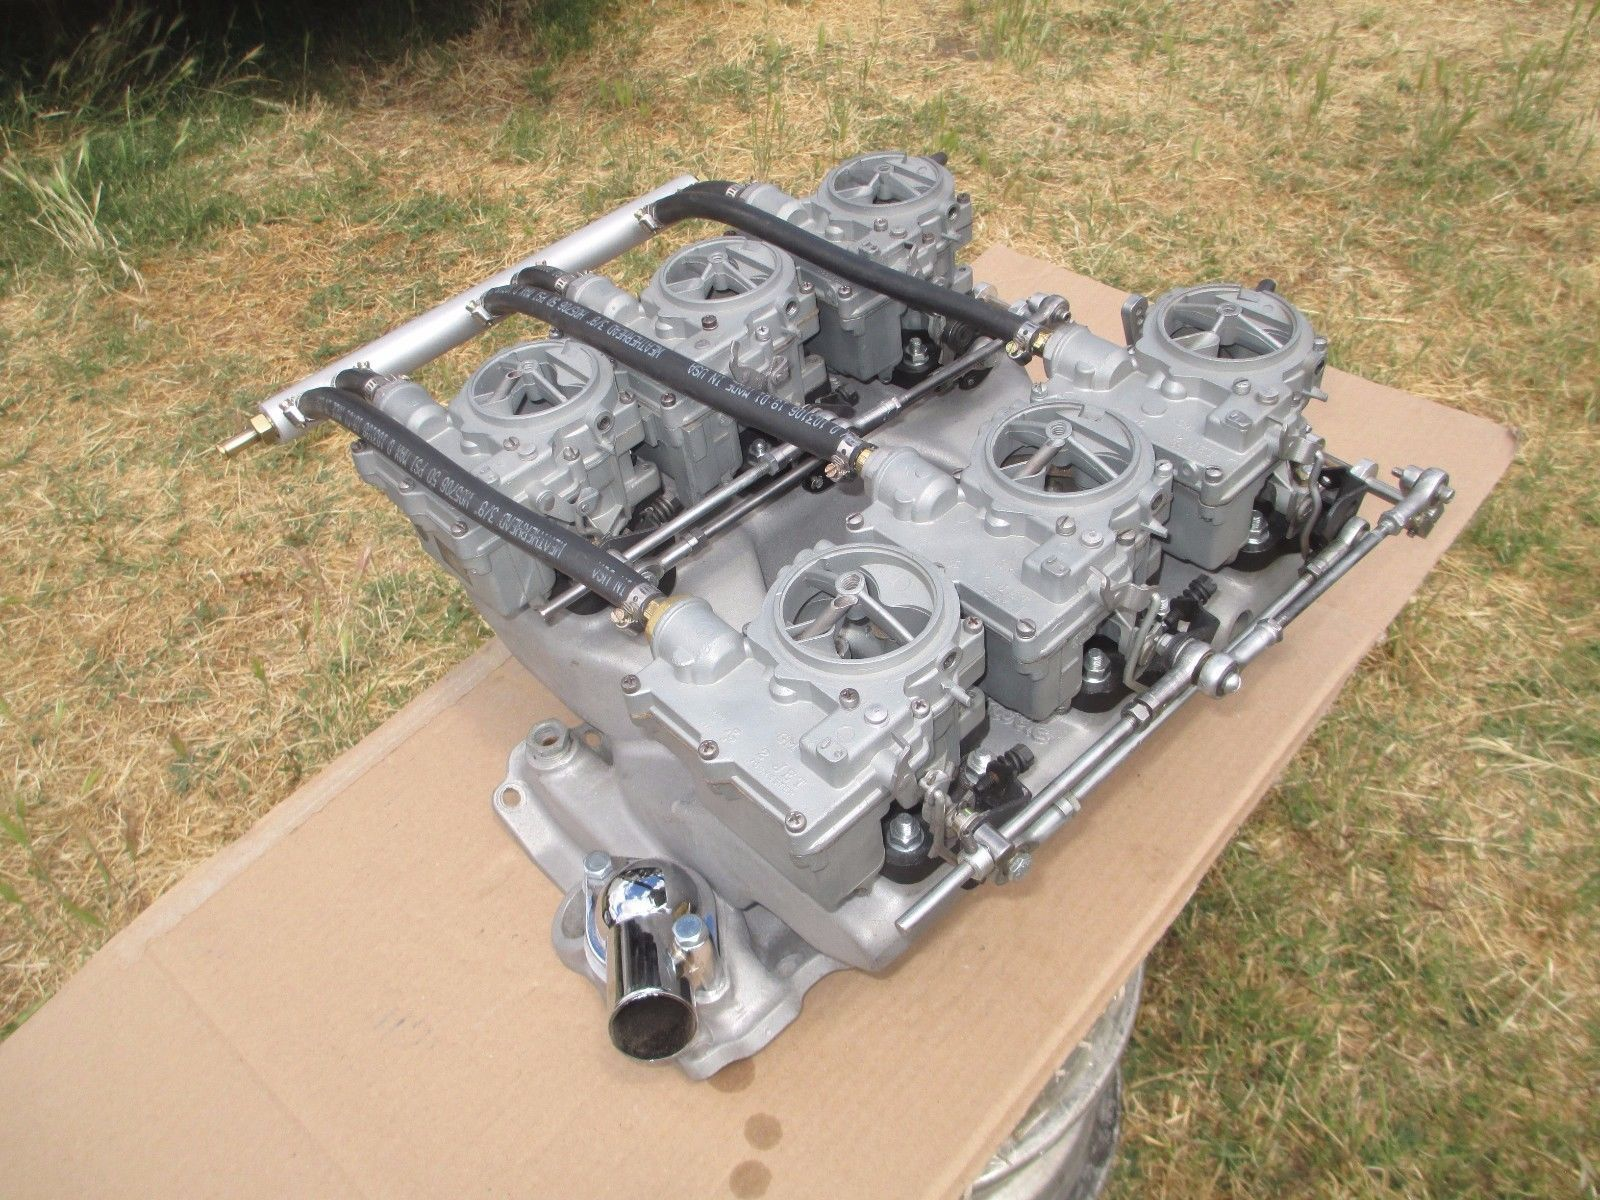 Details about Edelbrock TR1Y Chevy 350 SBC Tunnel Ram Intake